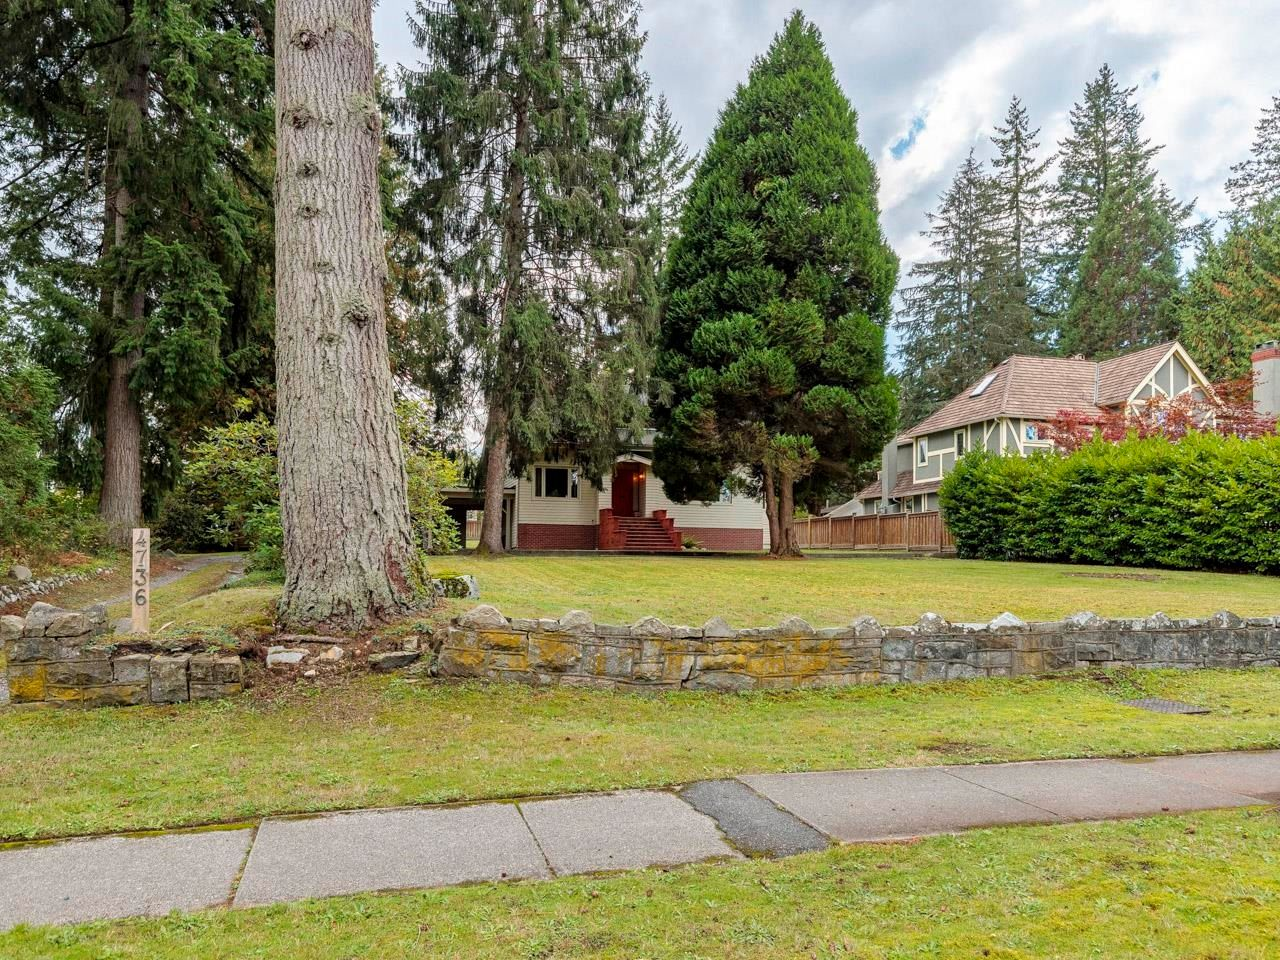 """Main Photo: 4736 W 4TH Avenue in Vancouver: Point Grey House for sale in """"Point Grey"""" (Vancouver West)  : MLS®# R2624856"""